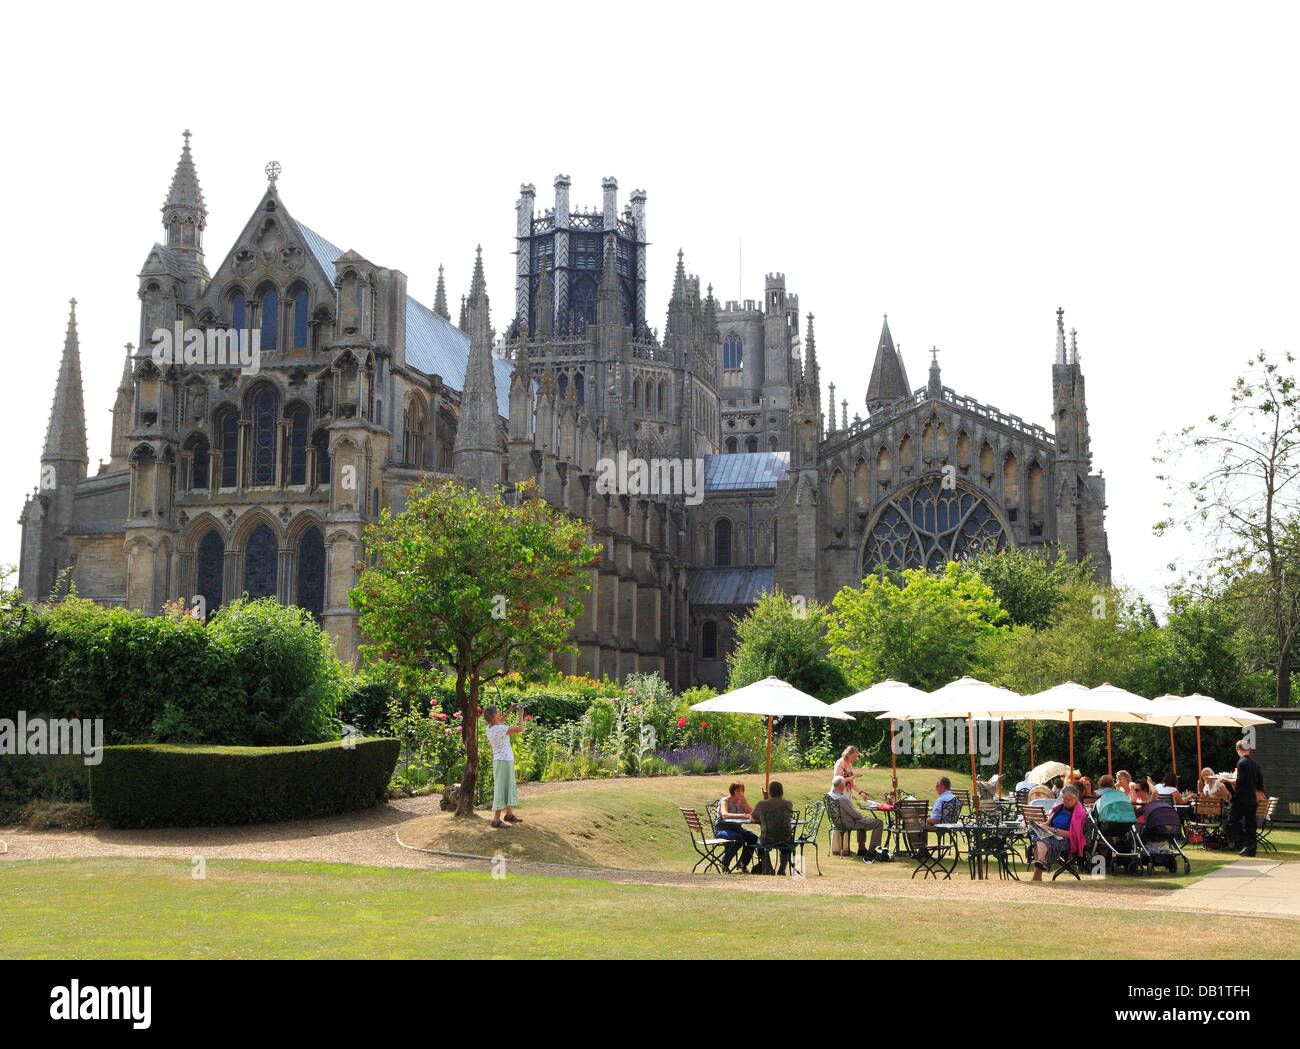 Ely, Almonry Salon de thé, restaurant, Cathédrale, Cambridgeshire, Angleterre UK English tea rooms cathédrales Photo Stock